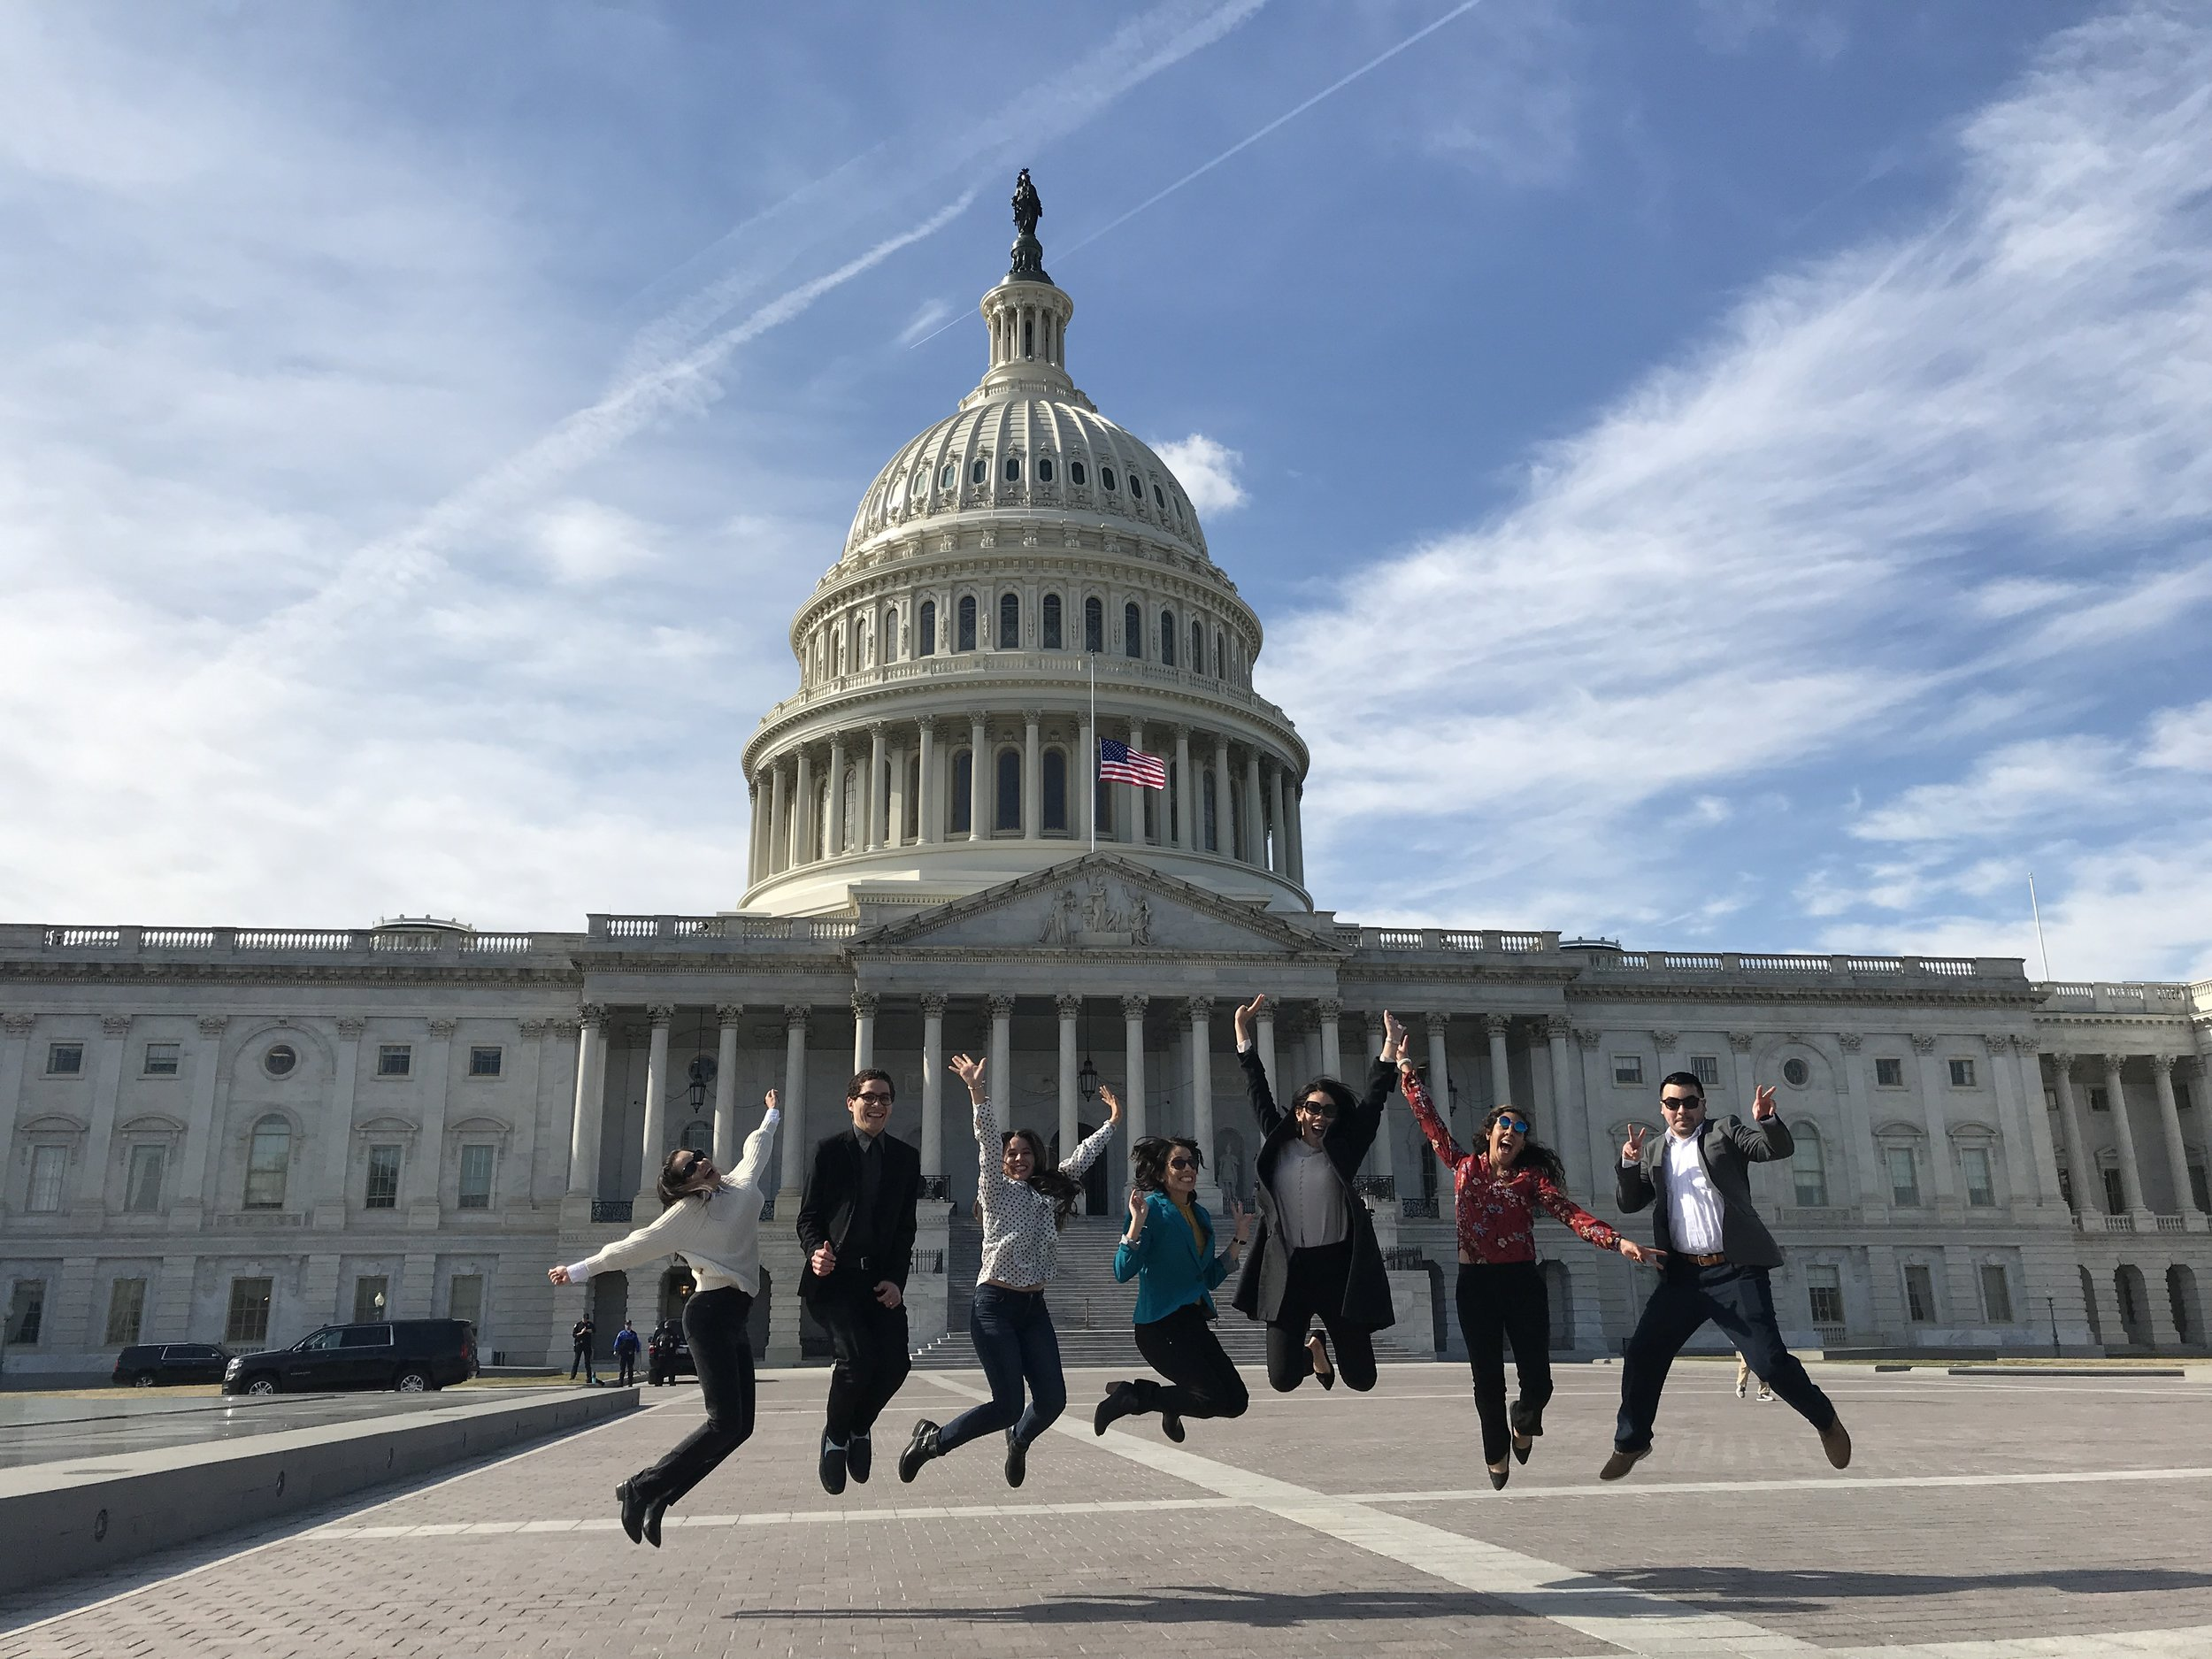 Puerto Rican scientists on the outskirts of the United States Congress.